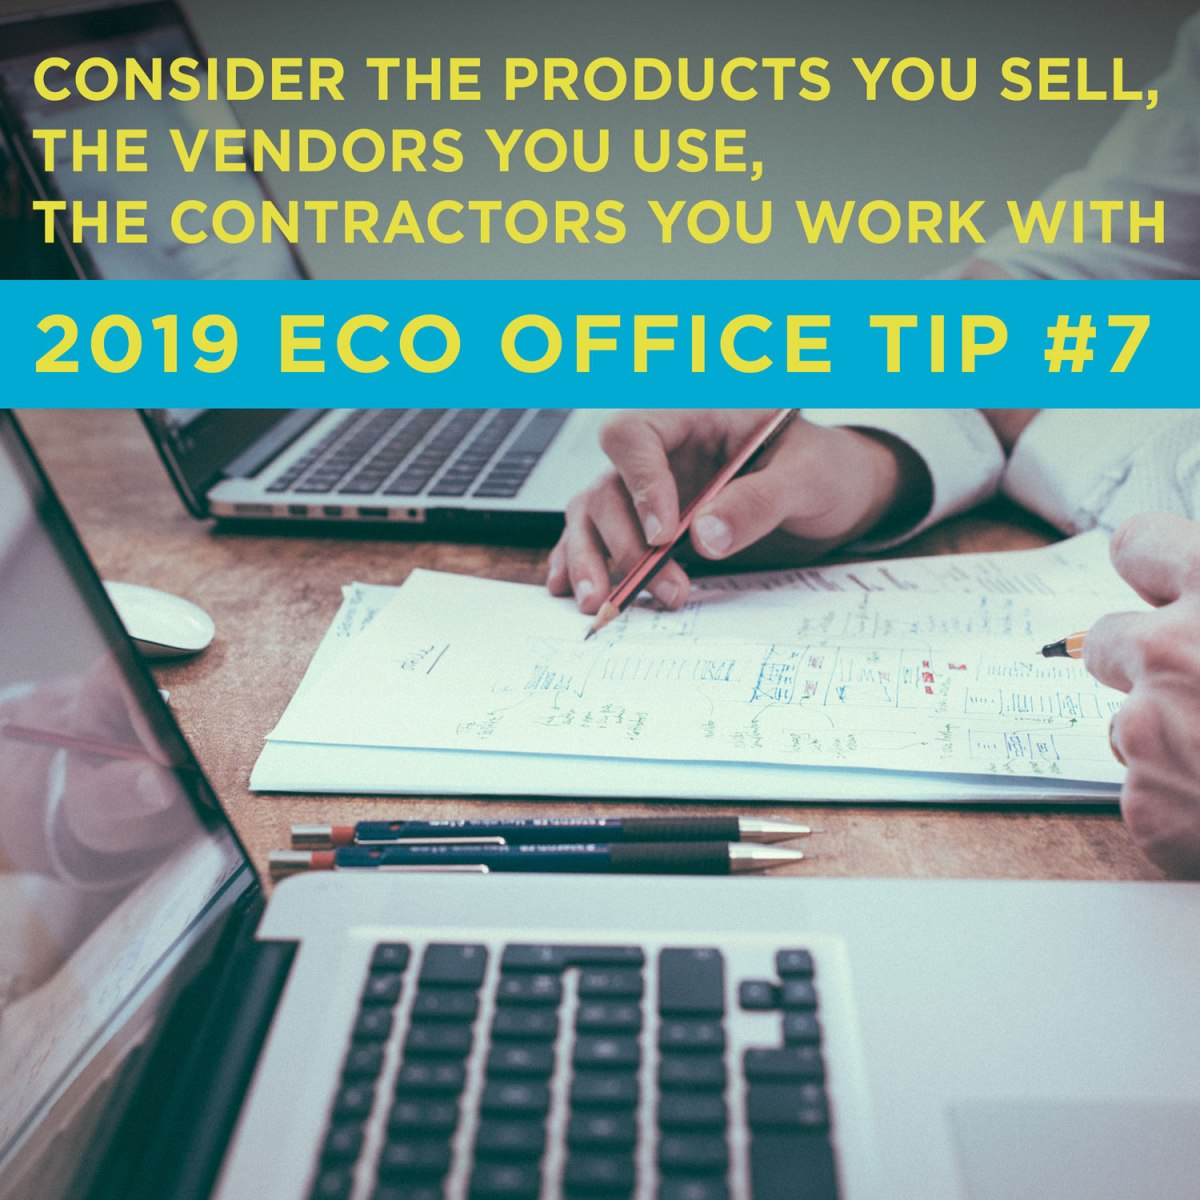 Eco Friendly Office Tip 7: Consider the products you sell, the vendors you use, the contractors you work with